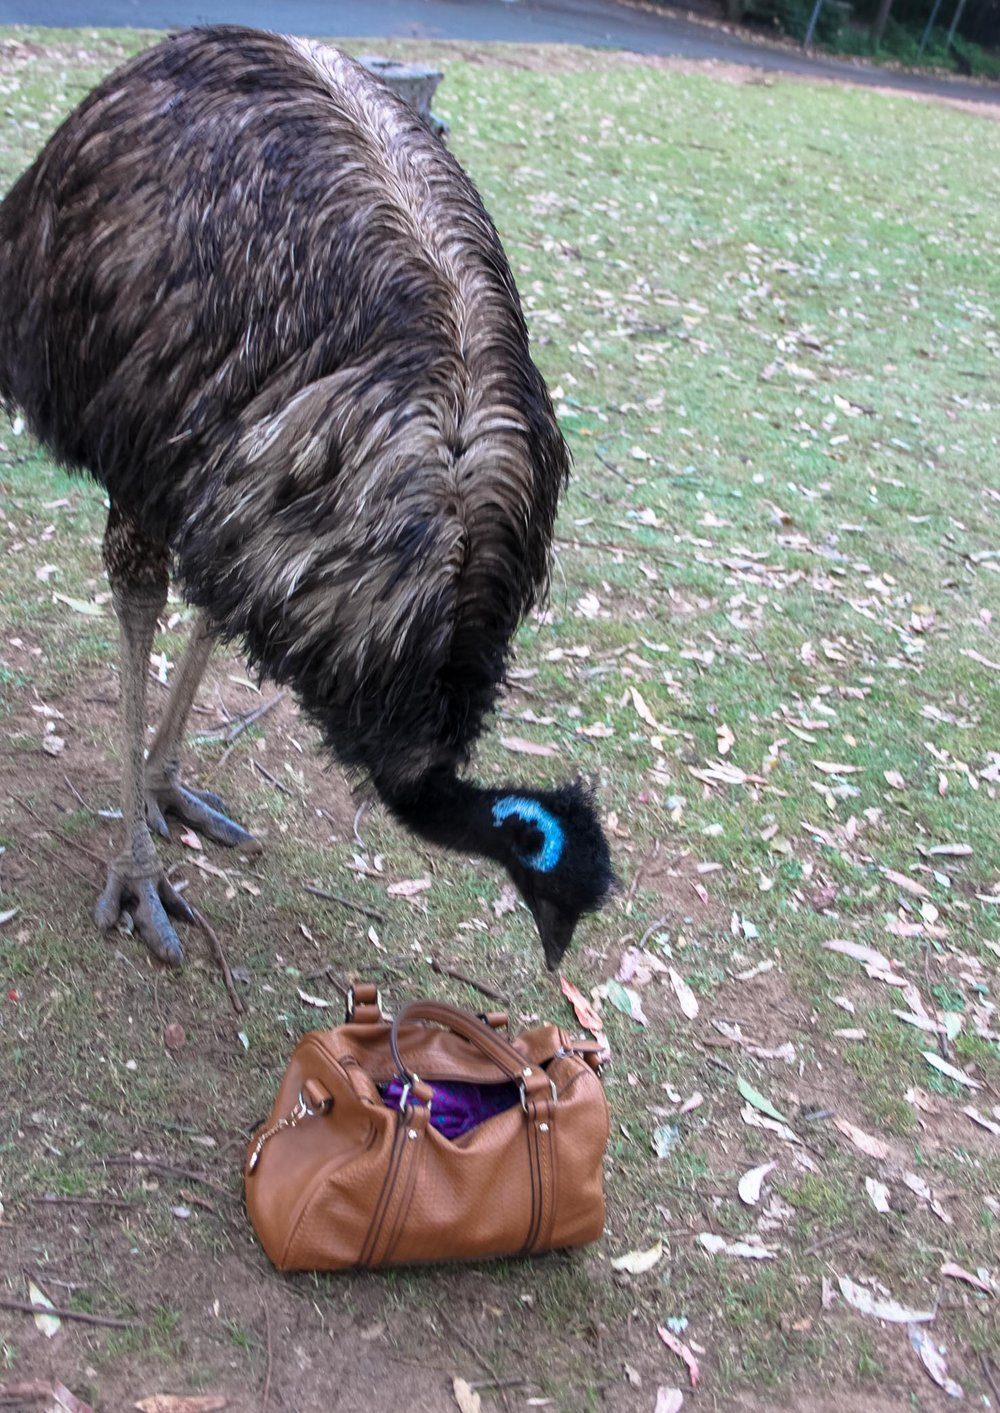 Emu sneaking through my handbag!